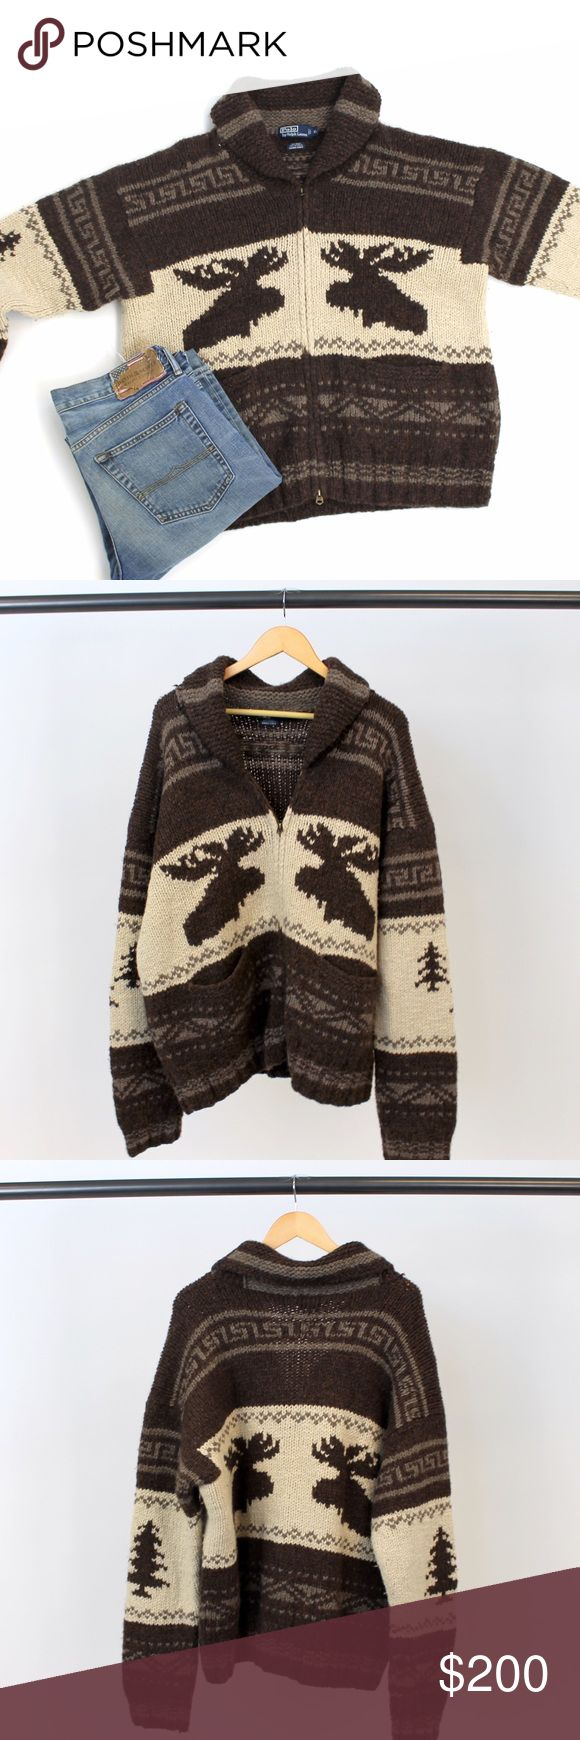 Brown and Cream Zip up Moose Sweater Brown and Cream Zip up Moose Sweater by Ralph Lauren. 75% Wool 25% Alpaca. Get in the festive spirit with this cabin- chic sweater! You will hardly believe how soft it is! Lightly worn! Ralph Lauren Sweaters Zip Up